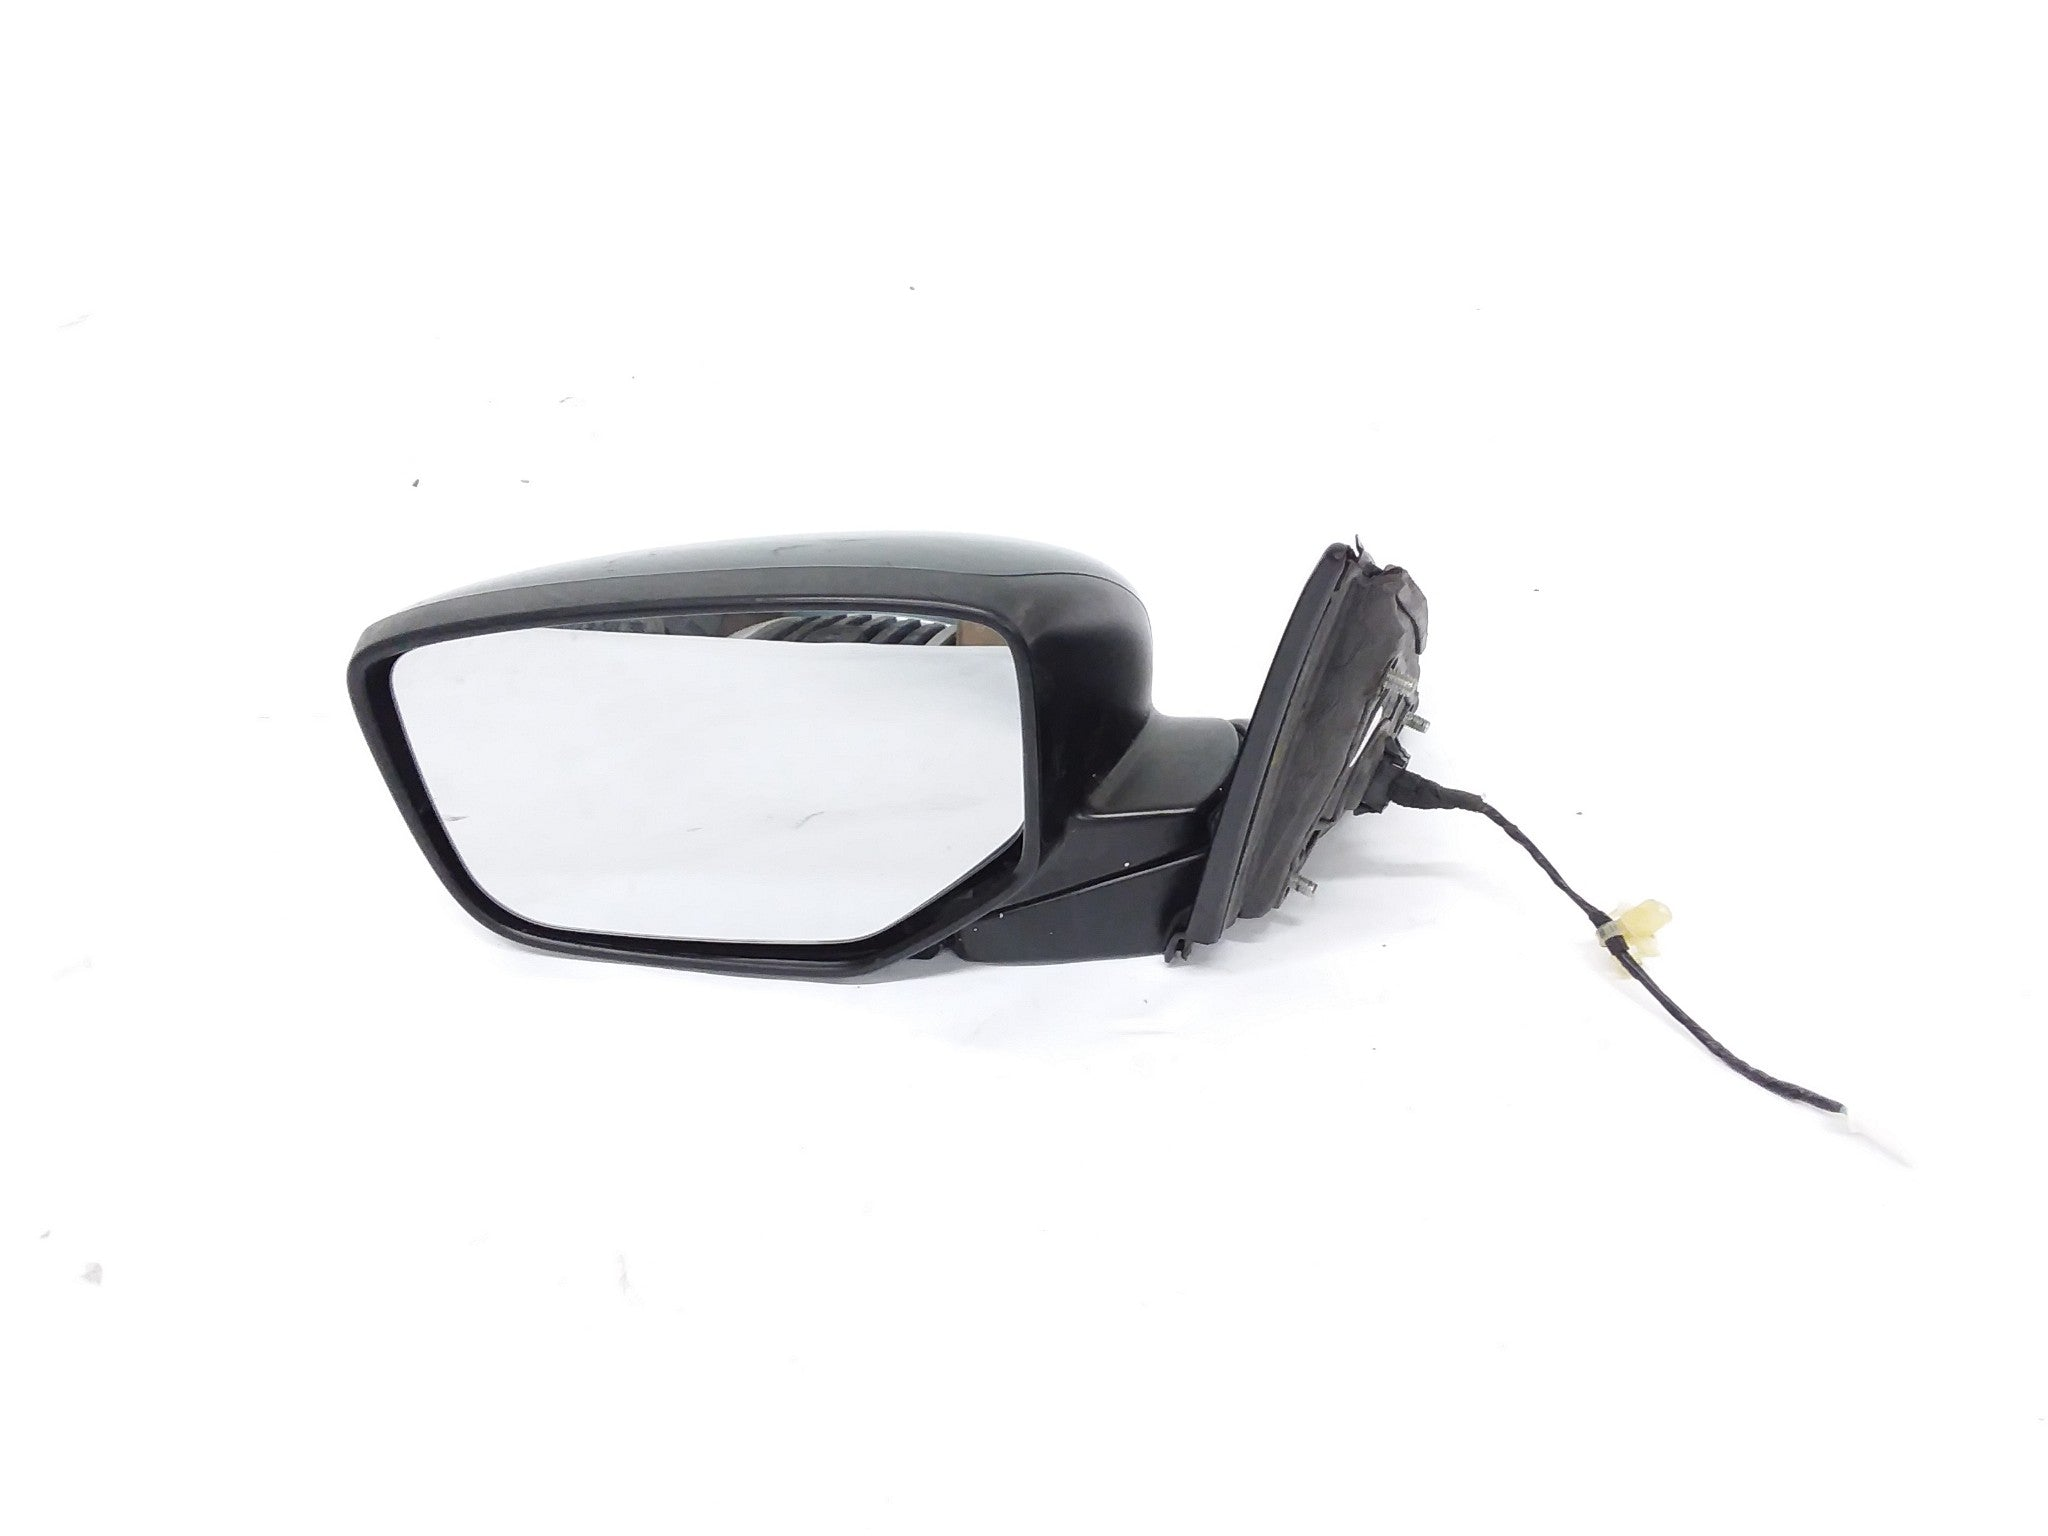 HONDA ACCORD DRIVER LEFT REAR VIEW MIRROR 2013 2014 2017 OEM 76250-T2F-A310-M6